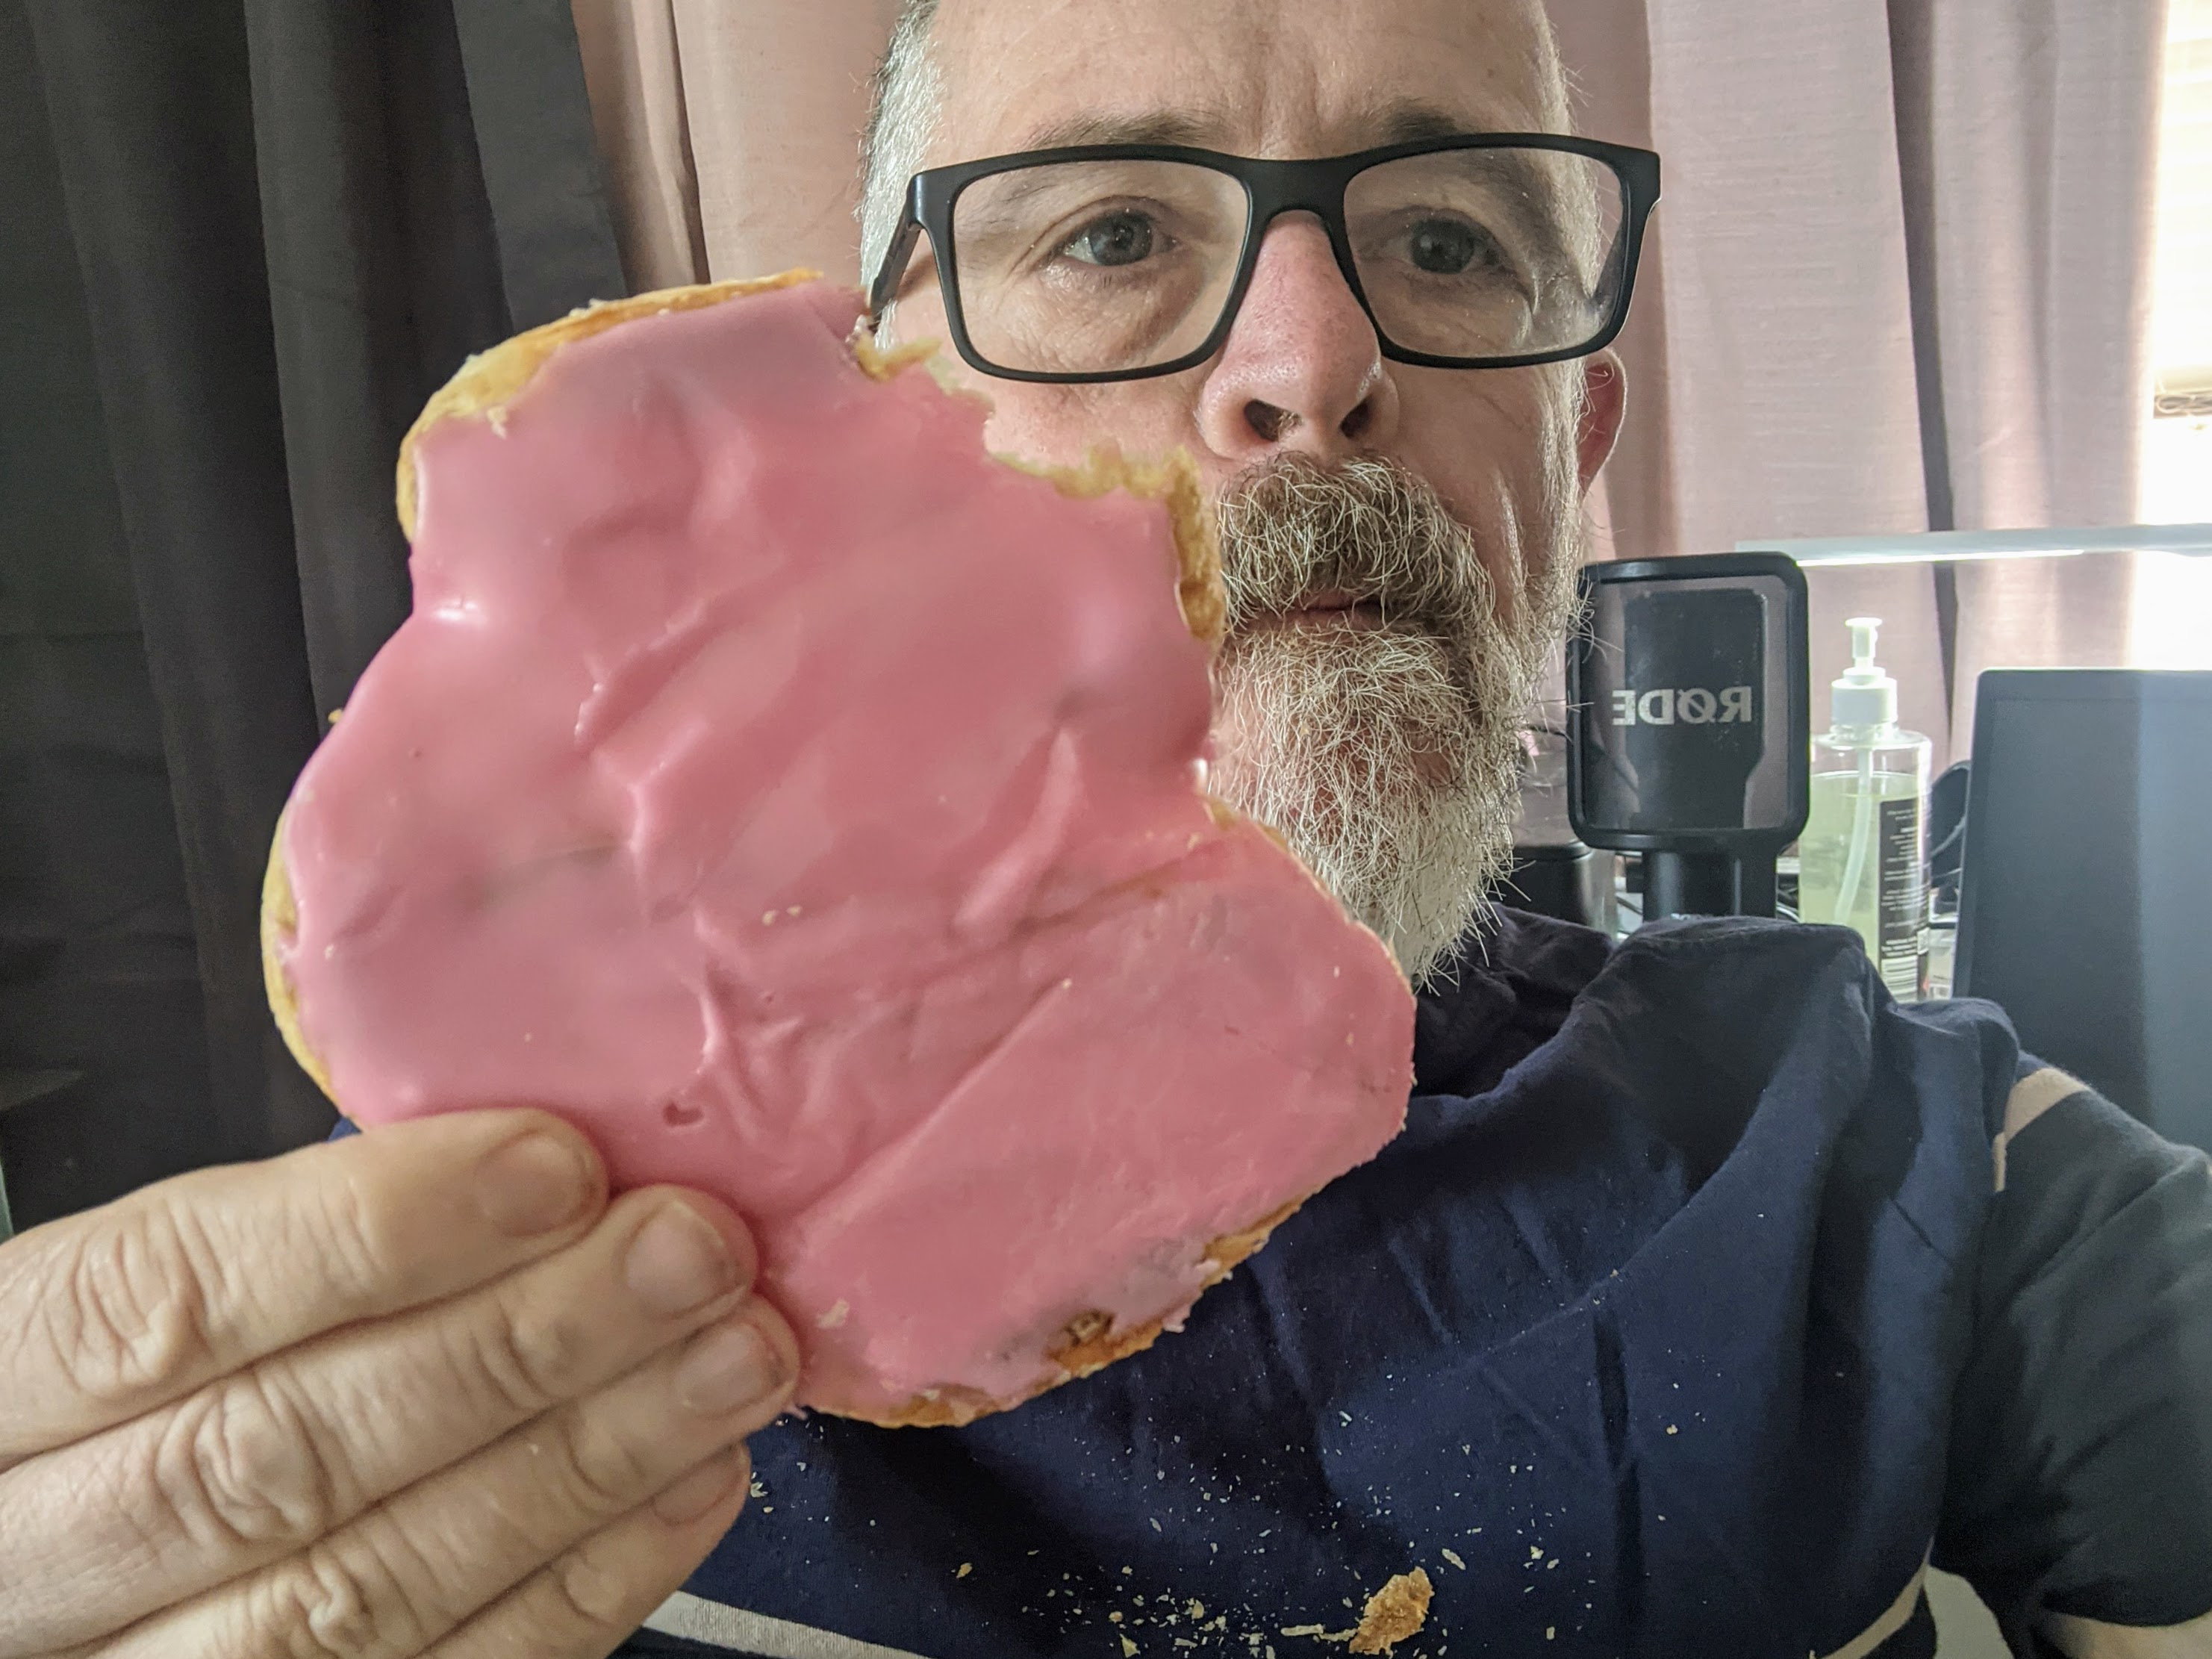 """Spotted one of these at the South Lismore Bakery. Though they're calling it a """"French Pastry"""" these days, I remember it as an """"Elephant's Ear"""". Can someone please give the coronary ward at Lismore Base Hospital a heads up?"""